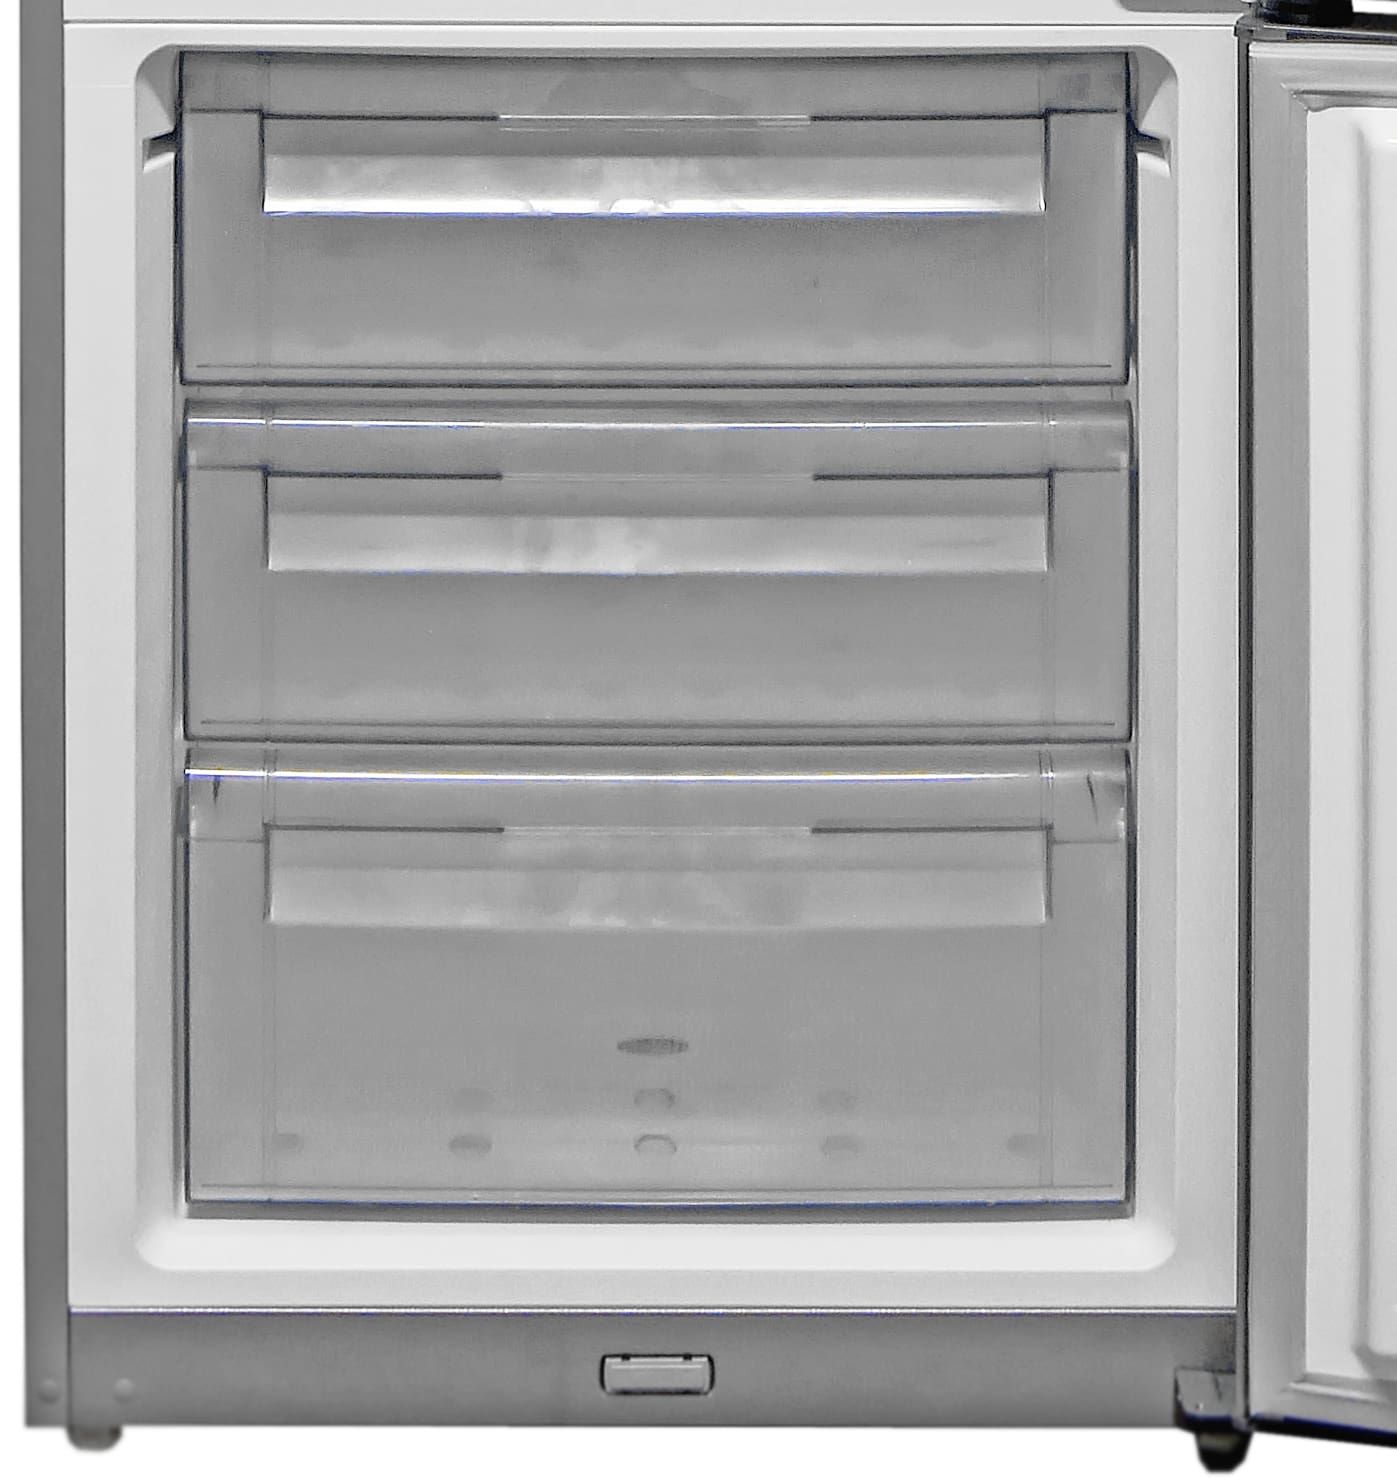 The Fagor FFJA4845X's three sliding freezer drawers are a built unwieldy, especially when filled up with heavy frozen food.